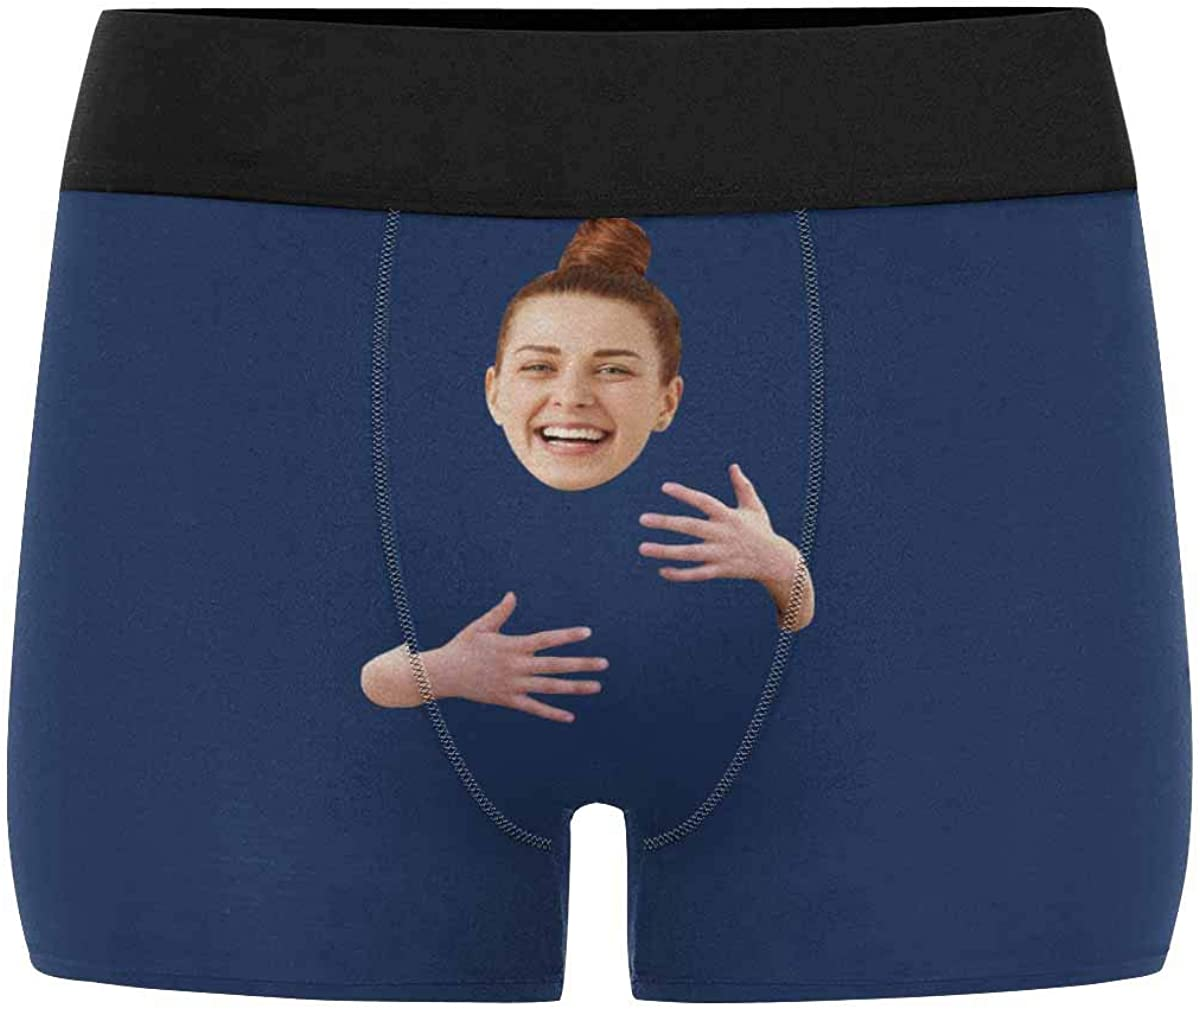 Custom Super beauty product restock quality top Face Ranking TOP13 Boxers Hug Personalized Briefs for Me Underwear